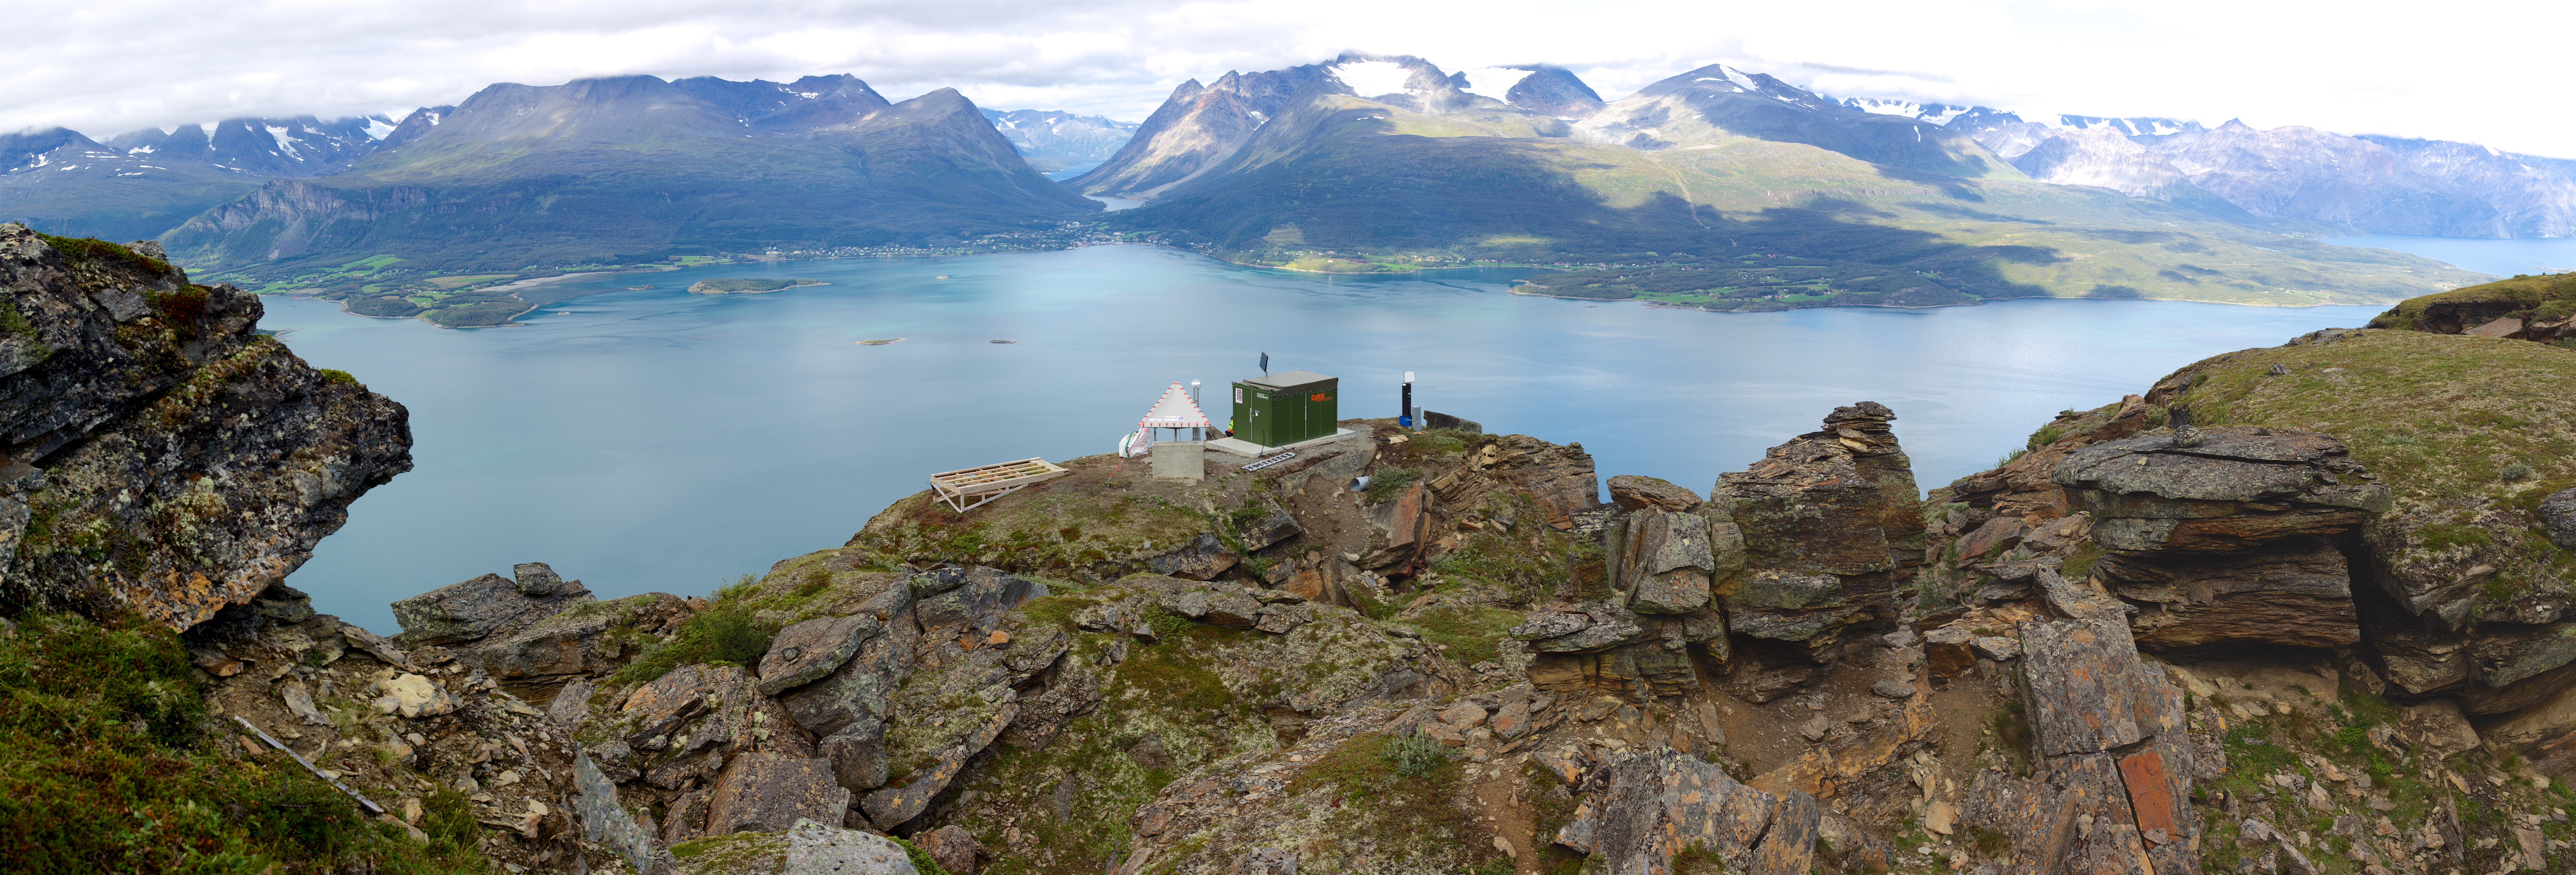 Physical Geography | University of Bergen